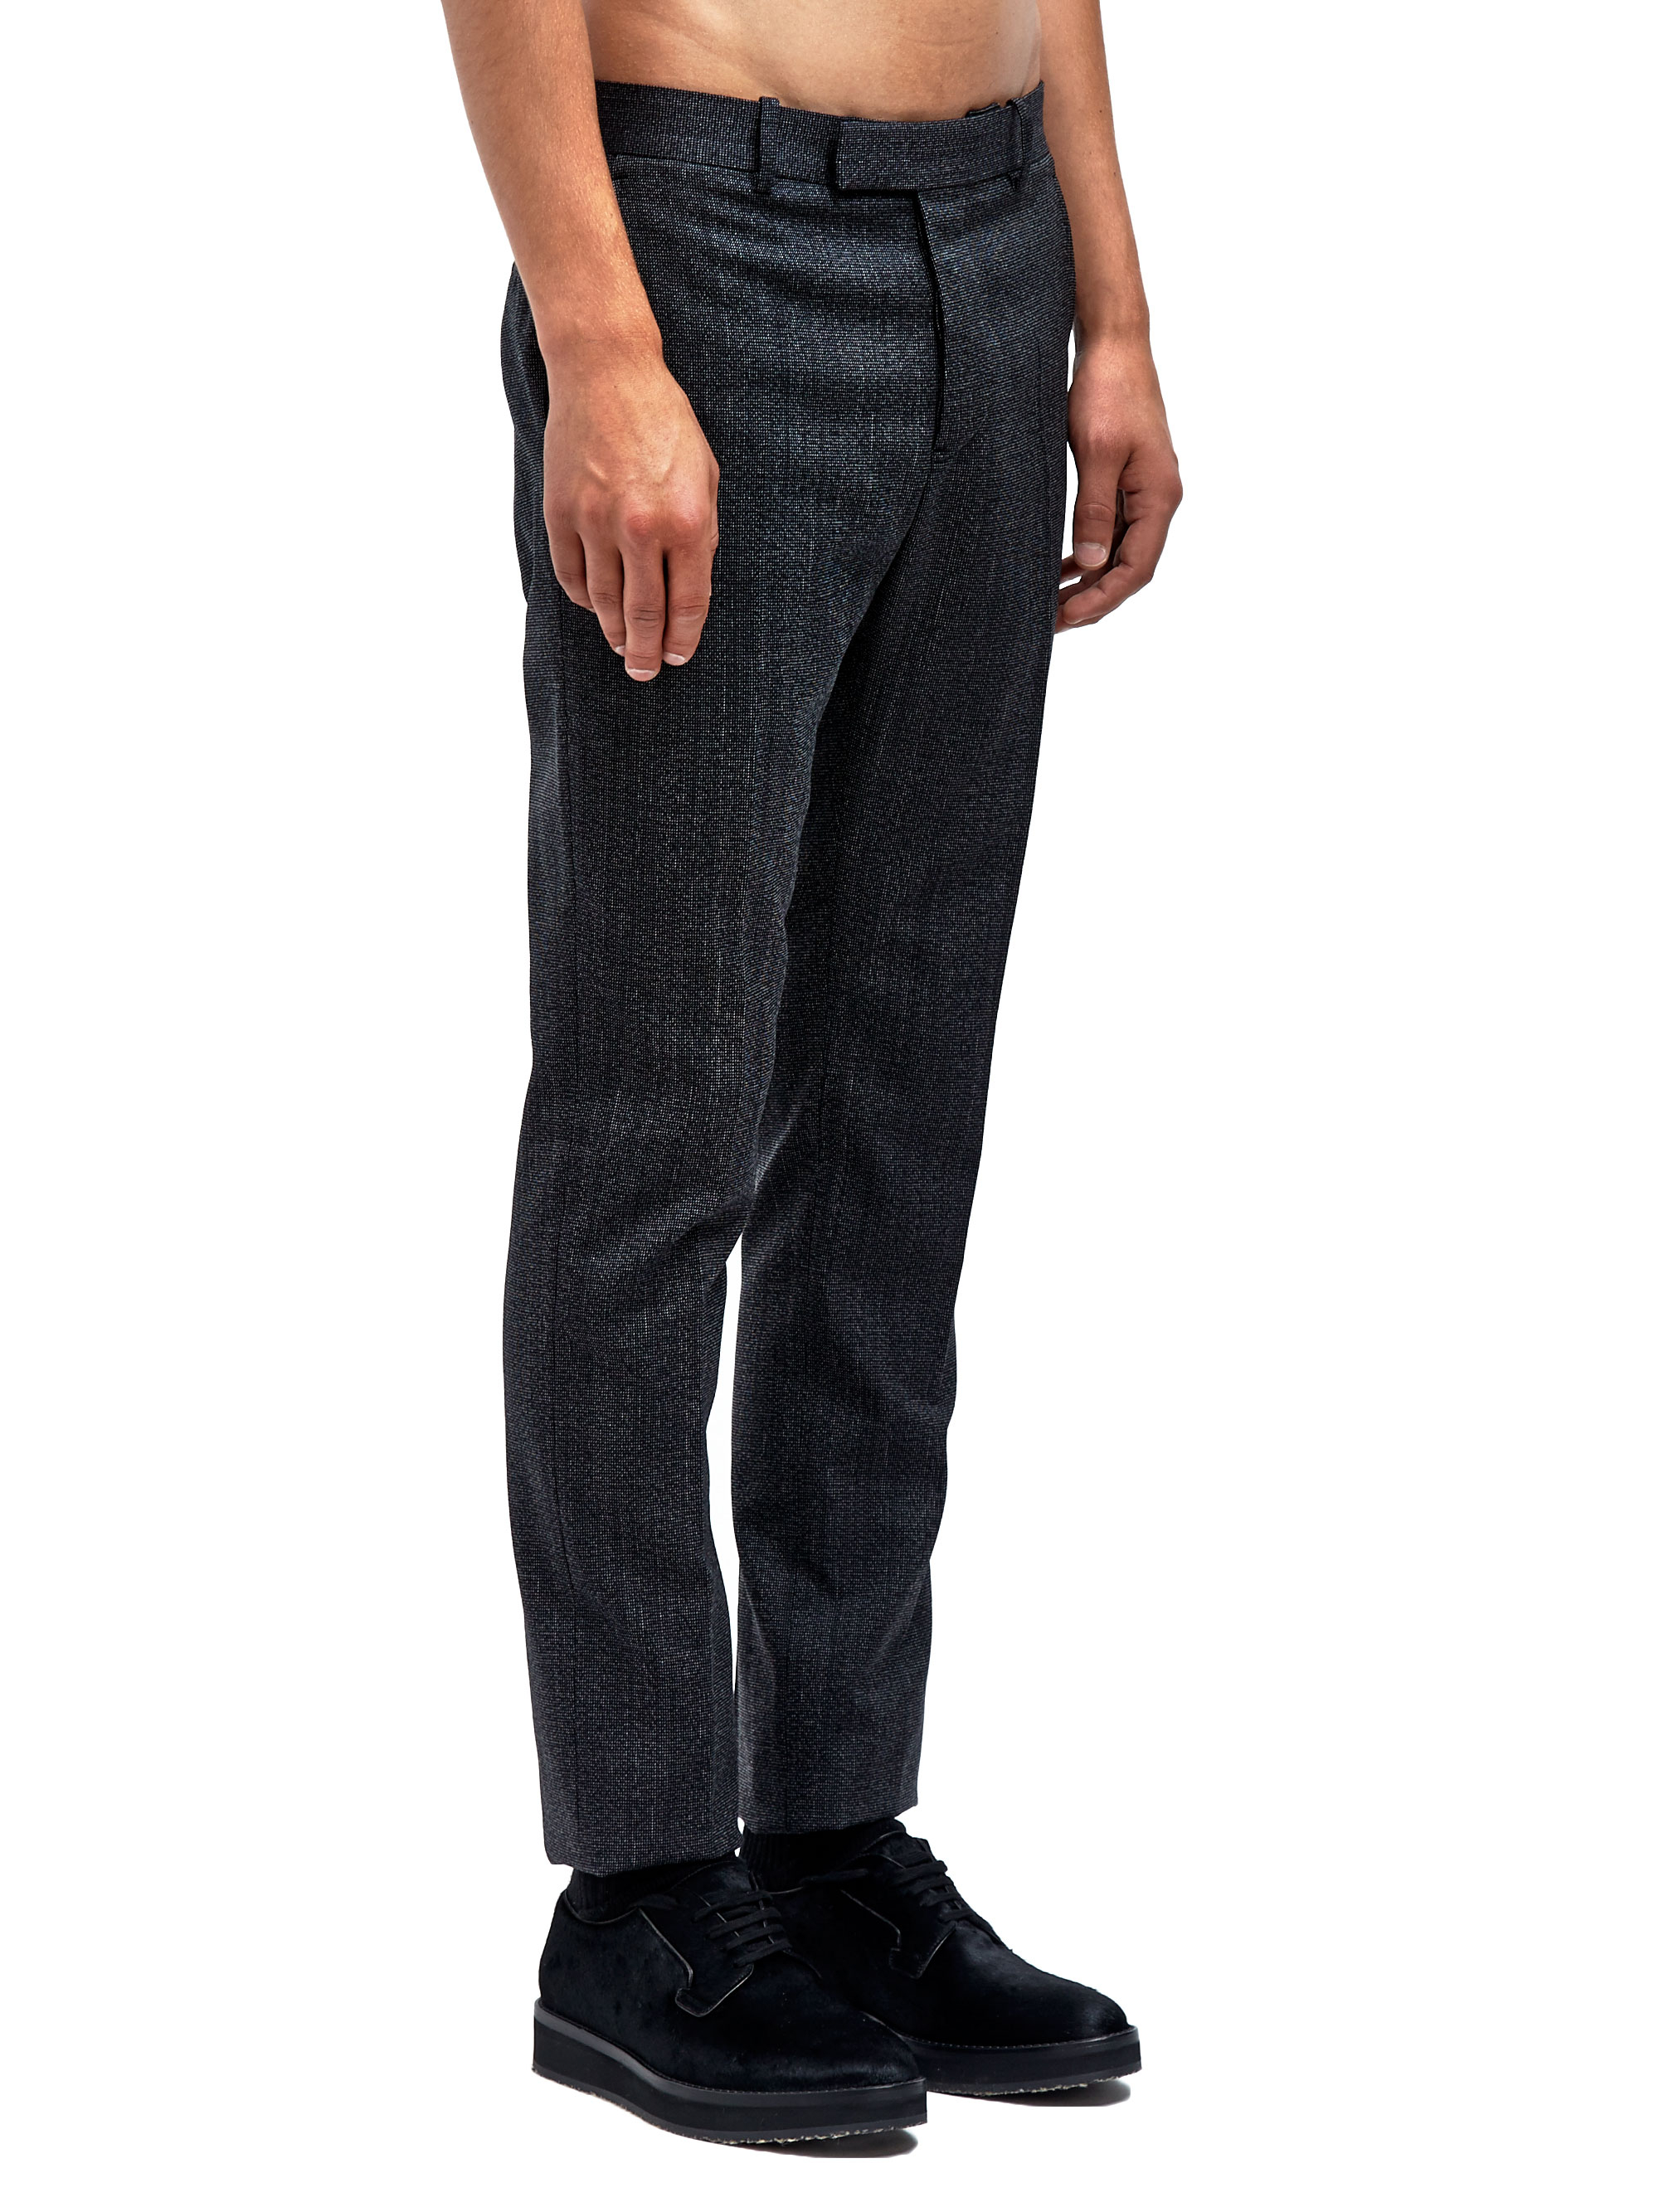 The Best Wool Pants And Trousers For Men Designer Options. Brooks Brothers Milano Fit Plain-Front Flannel Trousers. Burberry – SLIM FIT TRAVEL TAILORING WOOL TROUSERS. Ermenegildo Zegna – Black Formal Wool Flannel Pants. Brooks Brothers Regent Fit Stretch Wool Trousers.